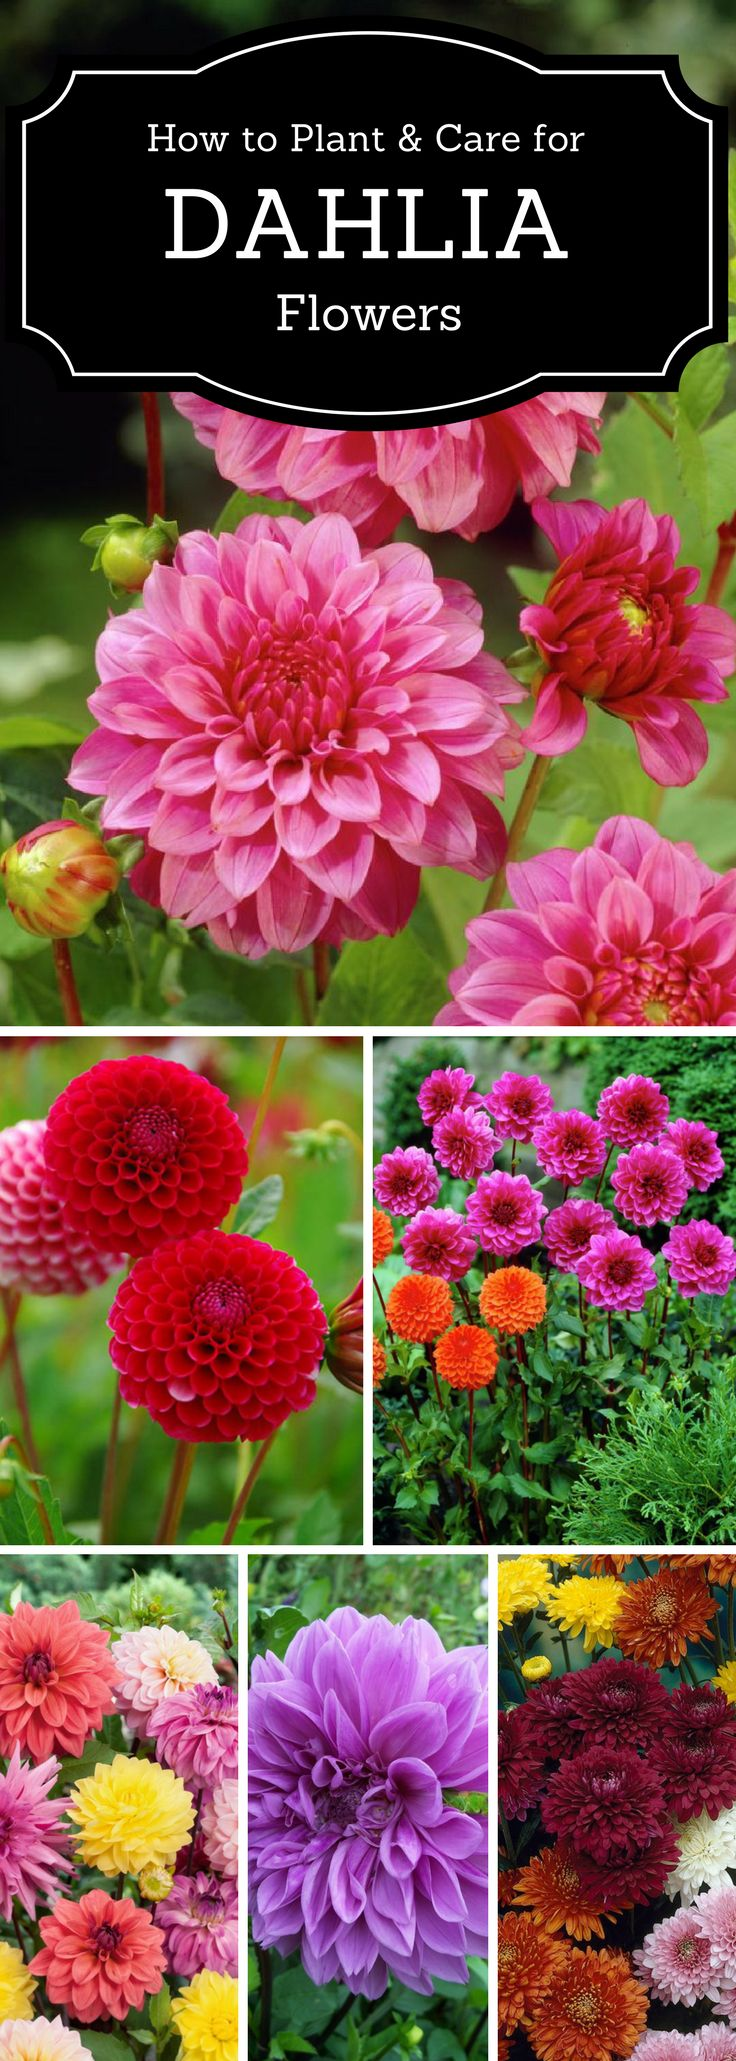 I just love dahlias....